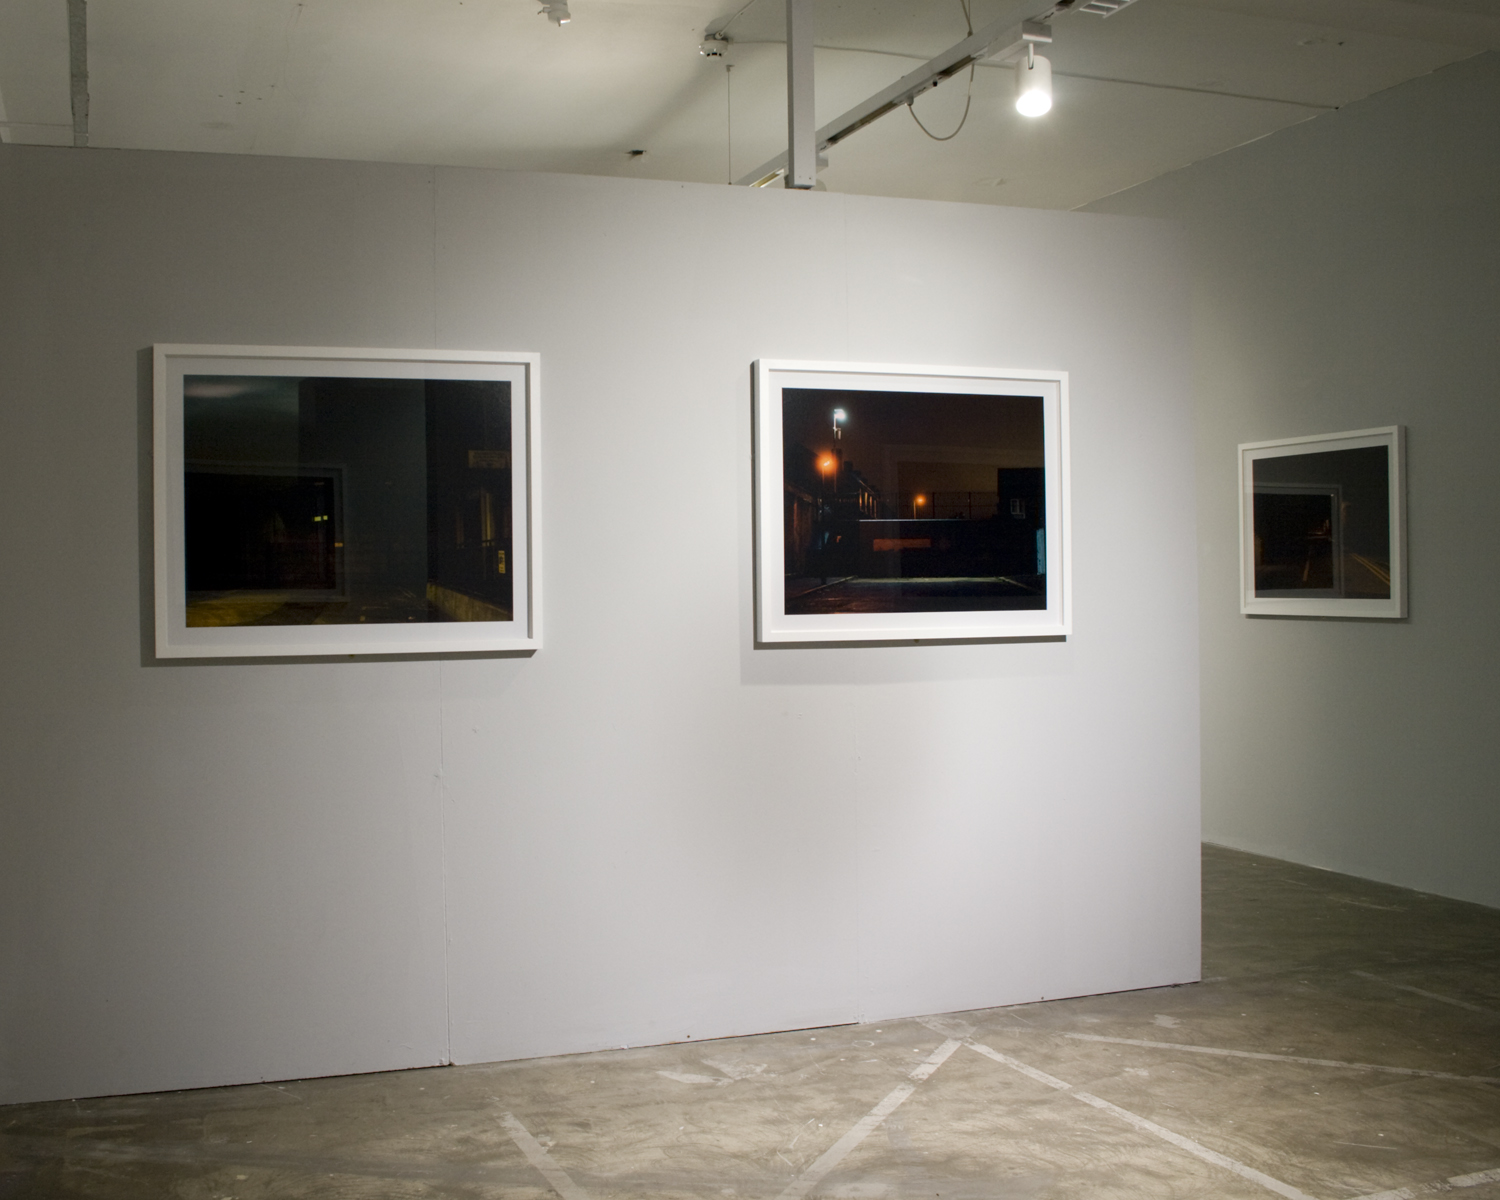 Under Cover of Darkness at the Golden Thread Gallery  Gallery